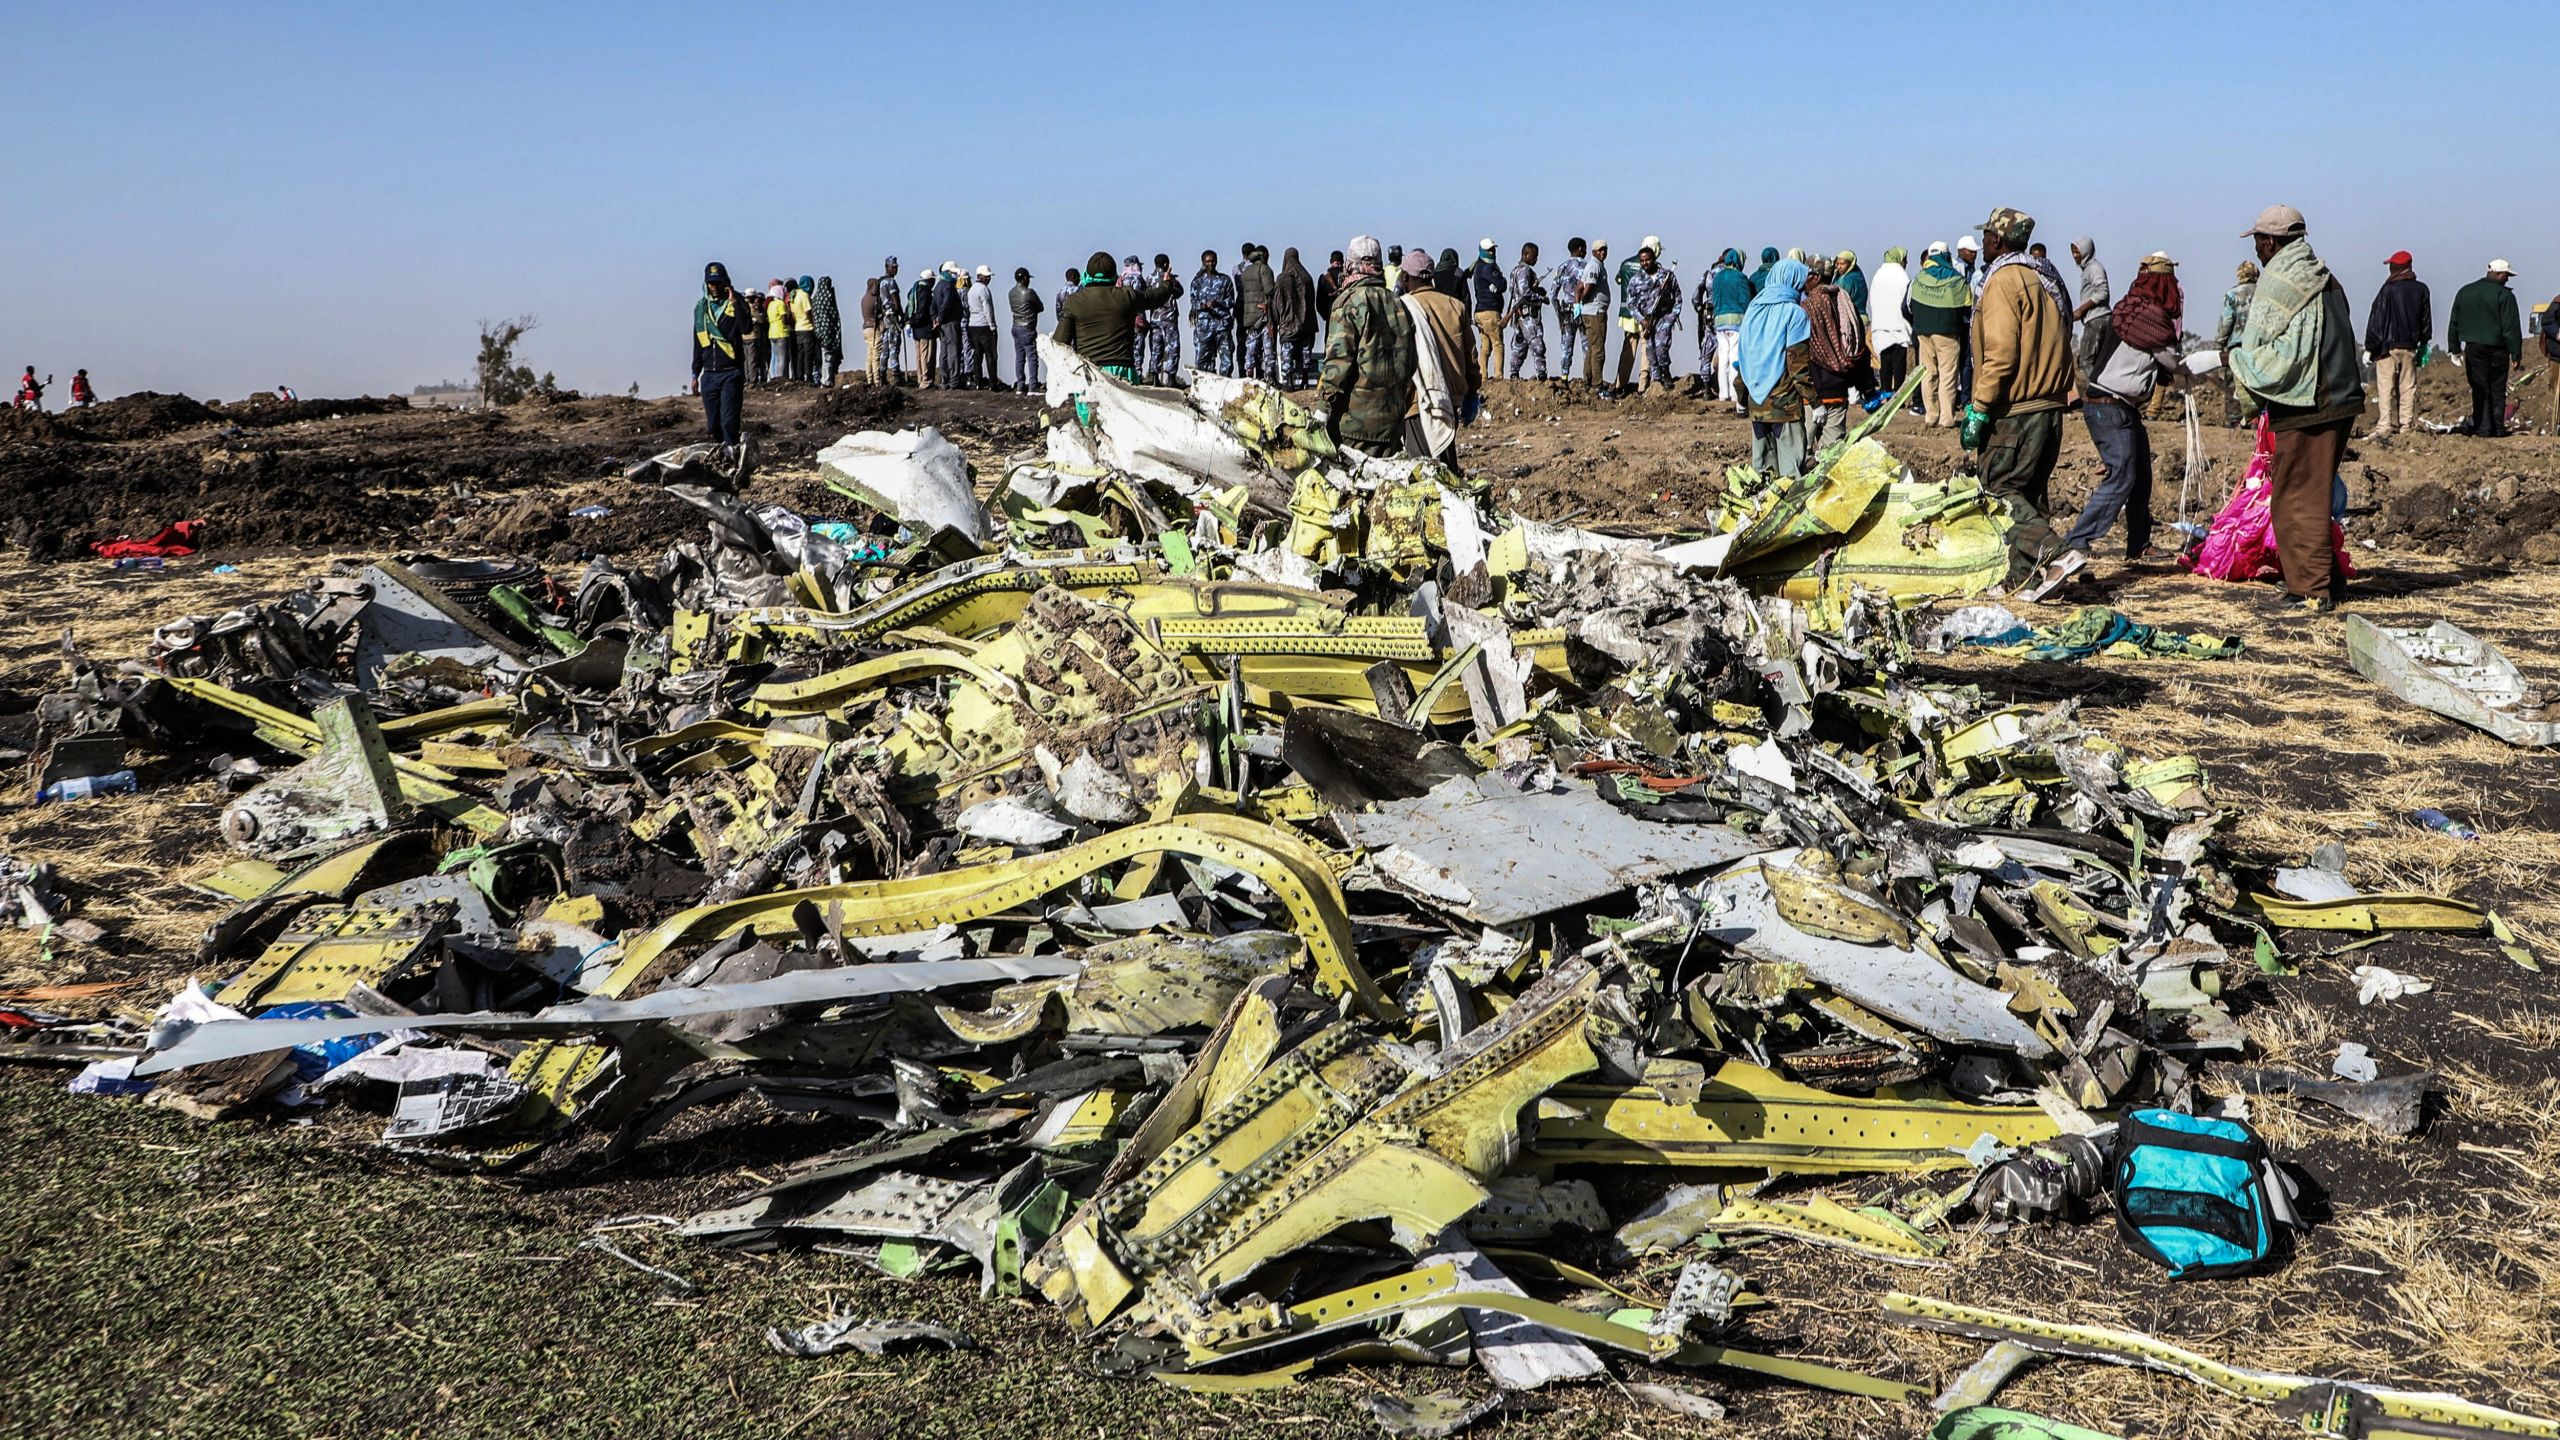 People stand near collected debris at the crash site of Ethiopia Airlines near Bishoftu, a town some 60 kilometres southeast of Addis Ababa, Ethiopia, on March 11, 2019. (Credit: MICHAEL TEWELDE/AFP/Getty Images)